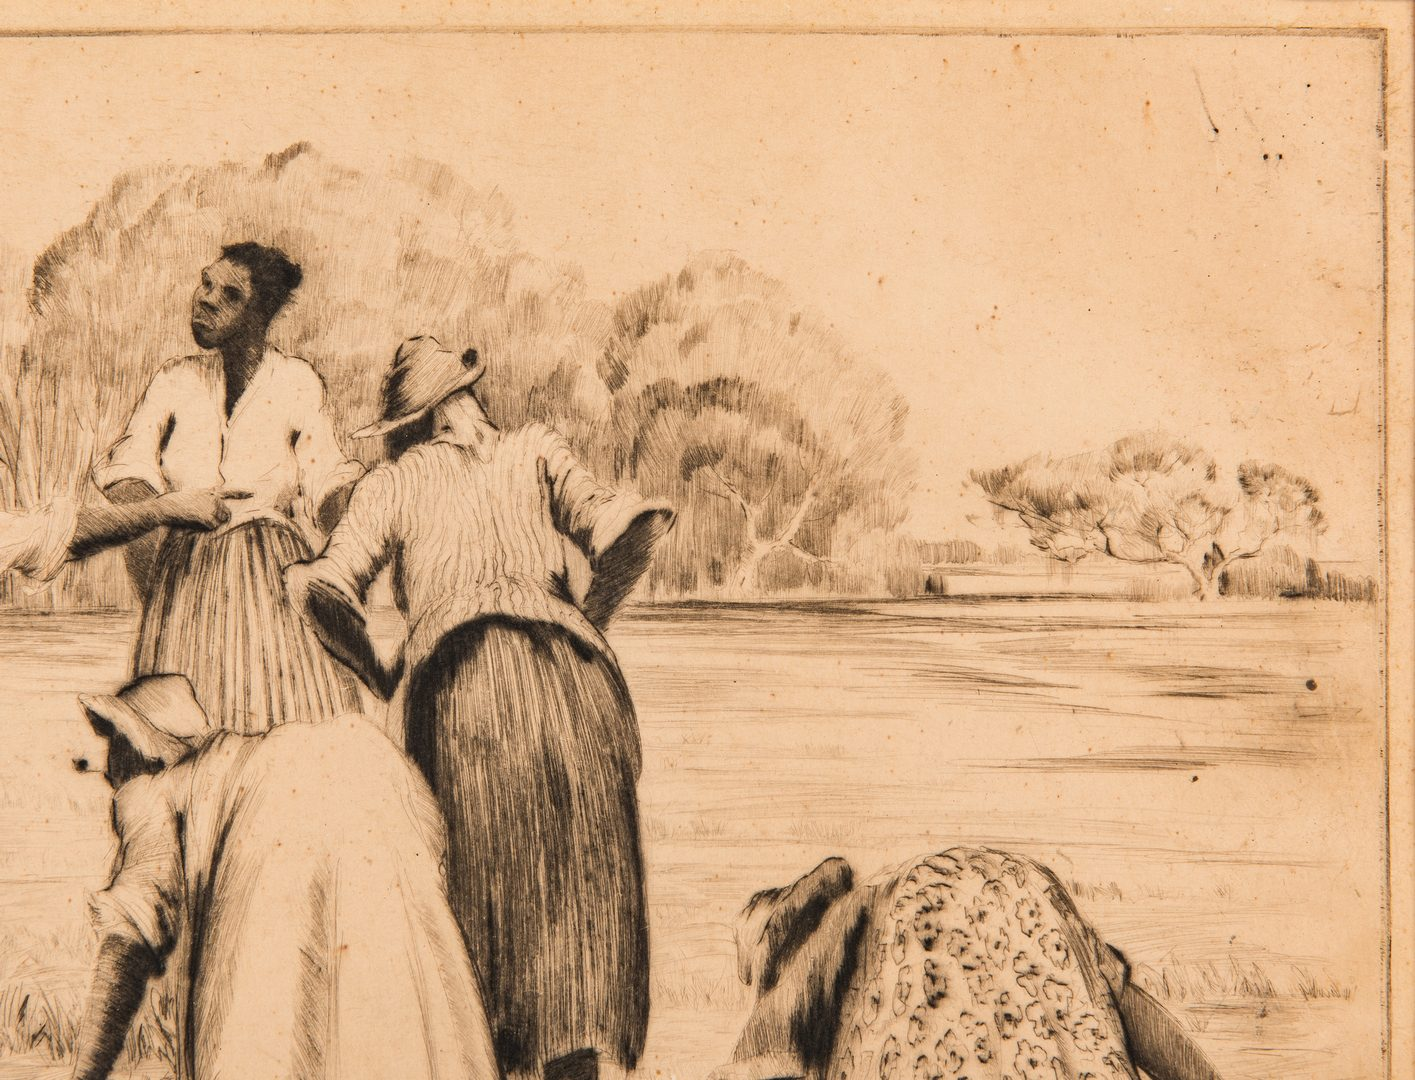 Lot 127: Alfred Hutty Drypoint Etching